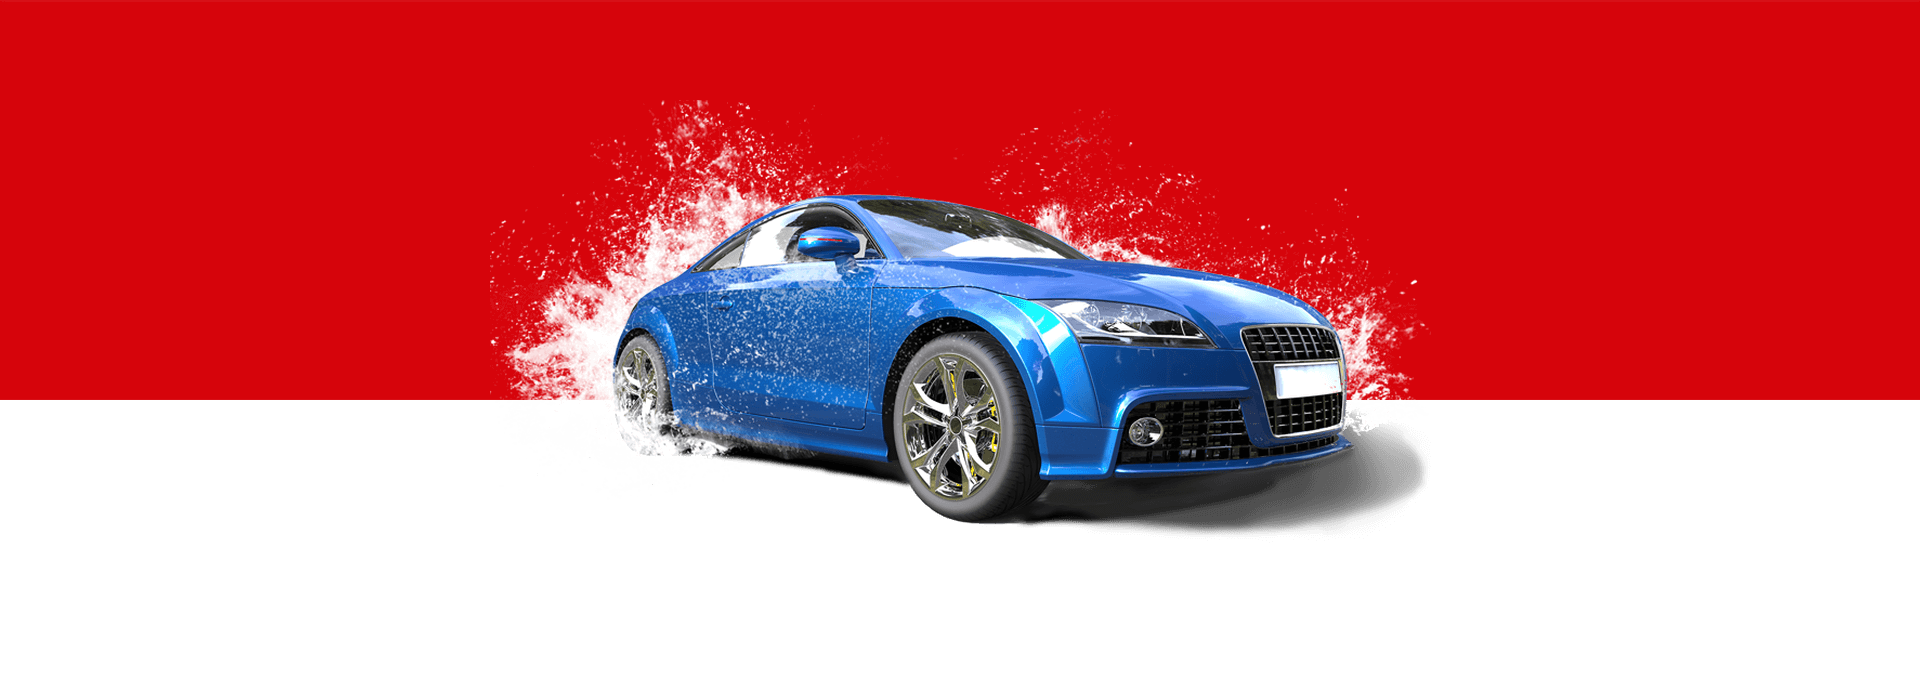 Home Portage Car Wash Car Detailing And Interior Car Wash - Audi car wash